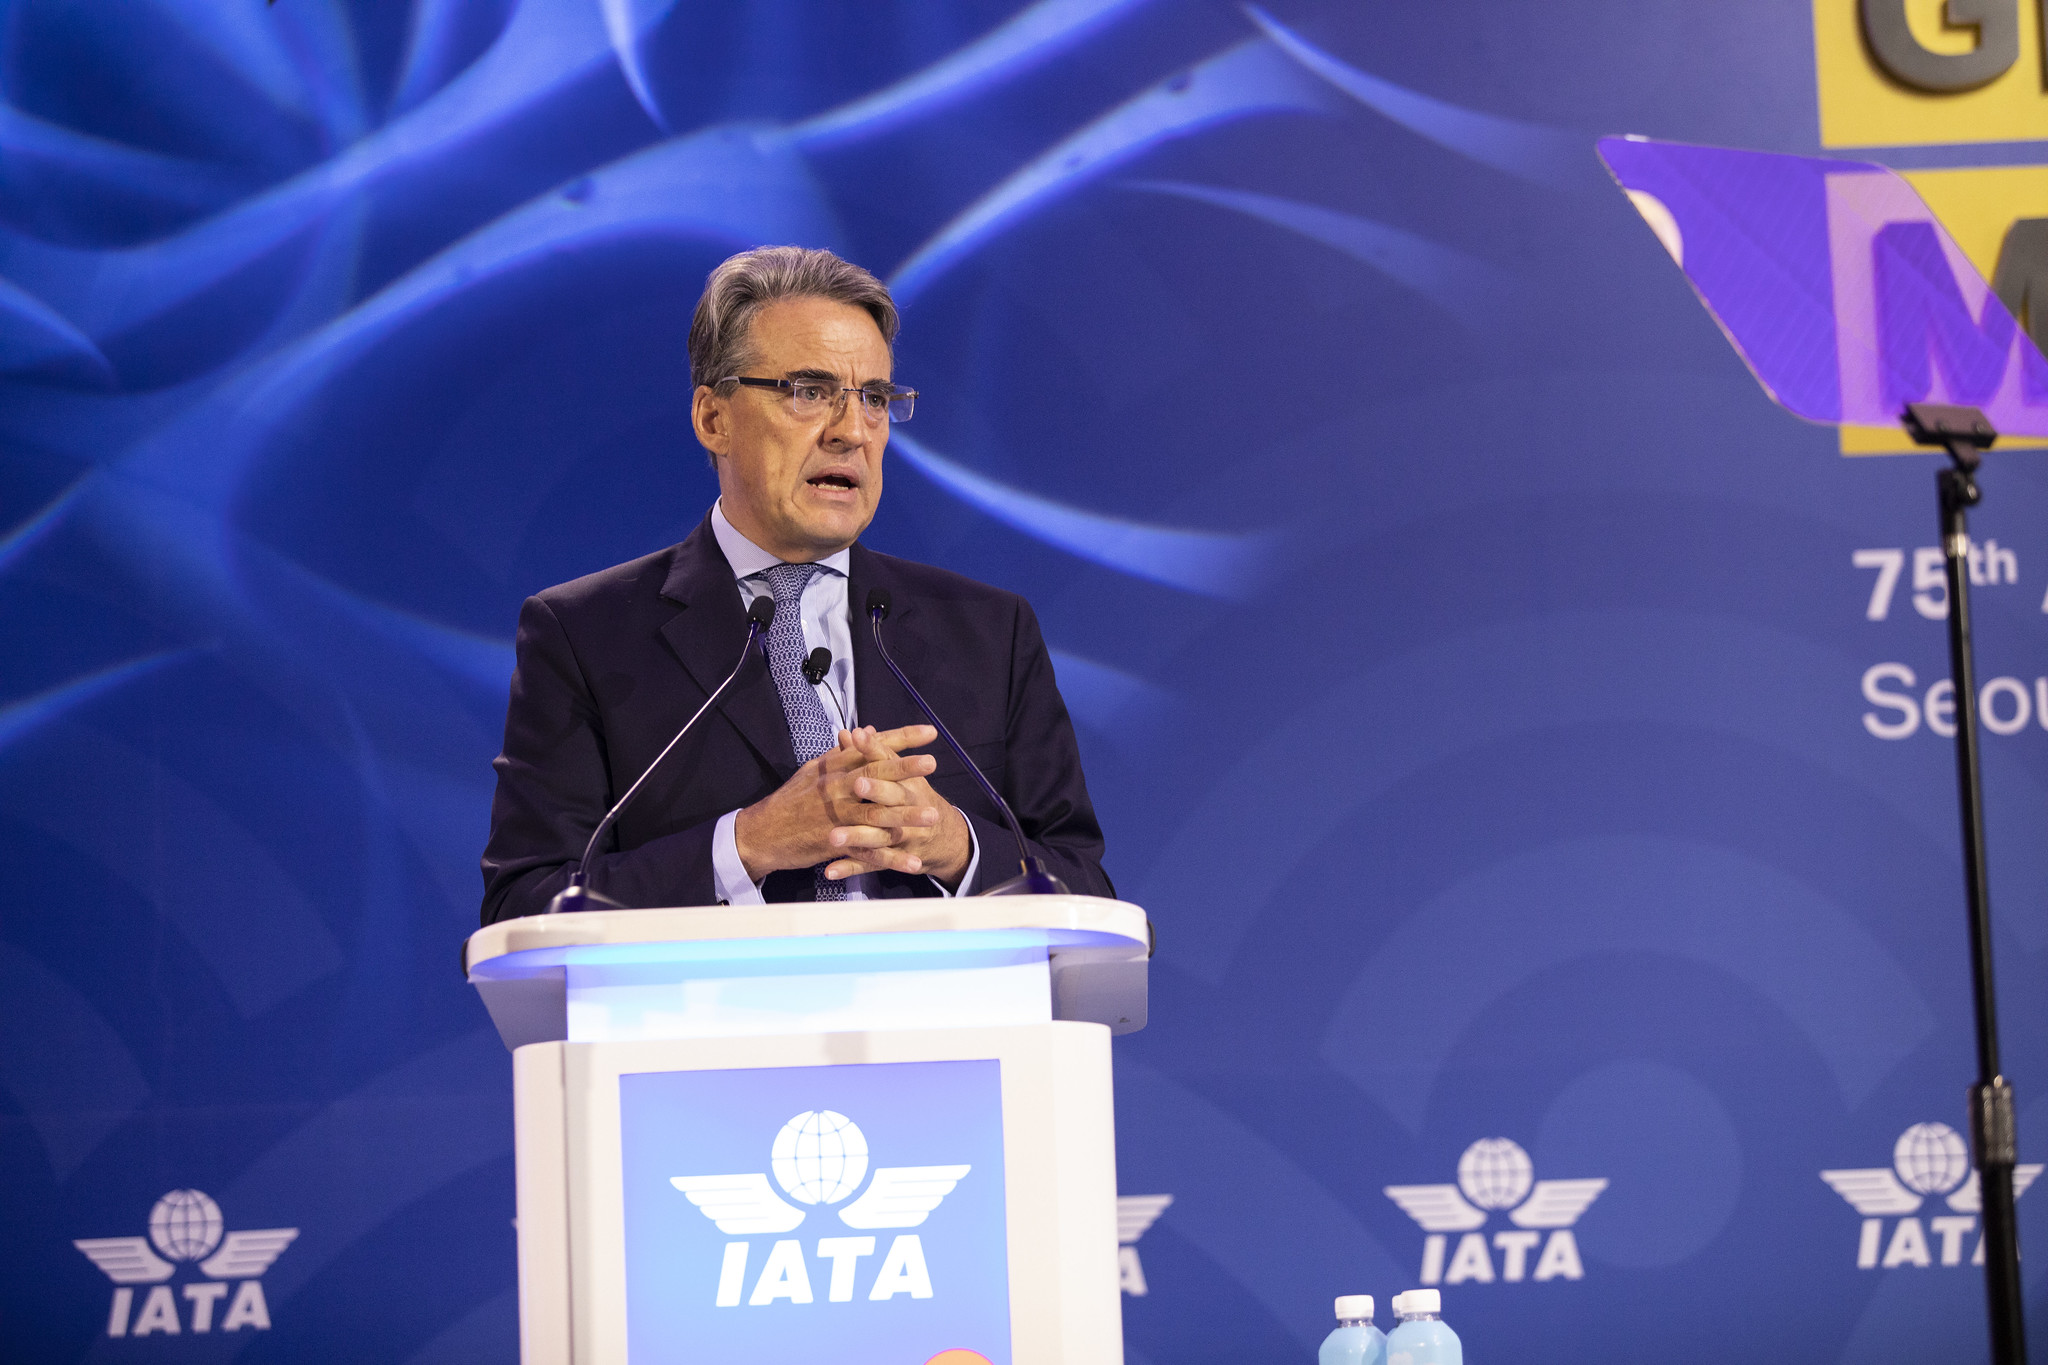 Remarks of Alexandre de Juniac at the IATA Media Briefing on COVID-19, 31 March 2020